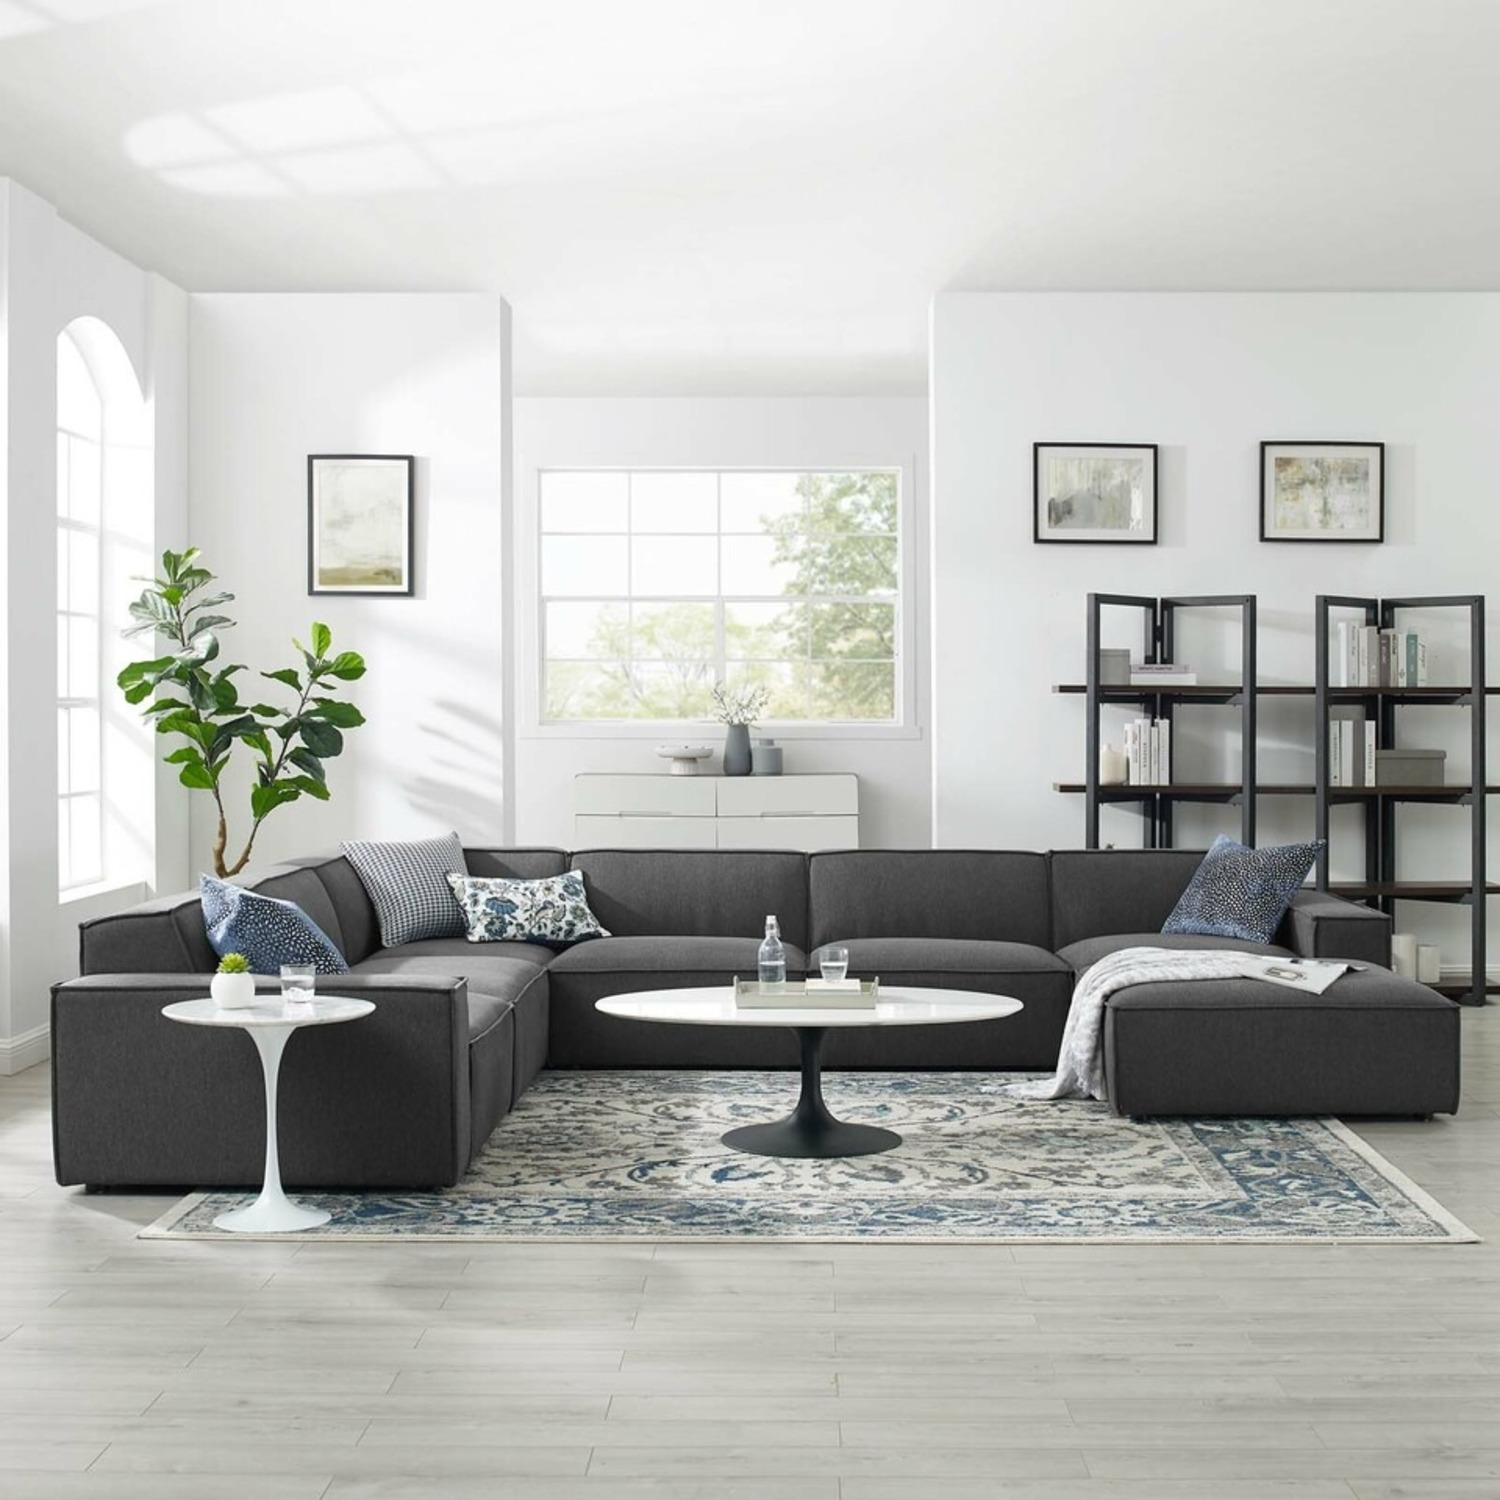 7-Piece Sectional Sofa In Charcoal Upholstery - image-12